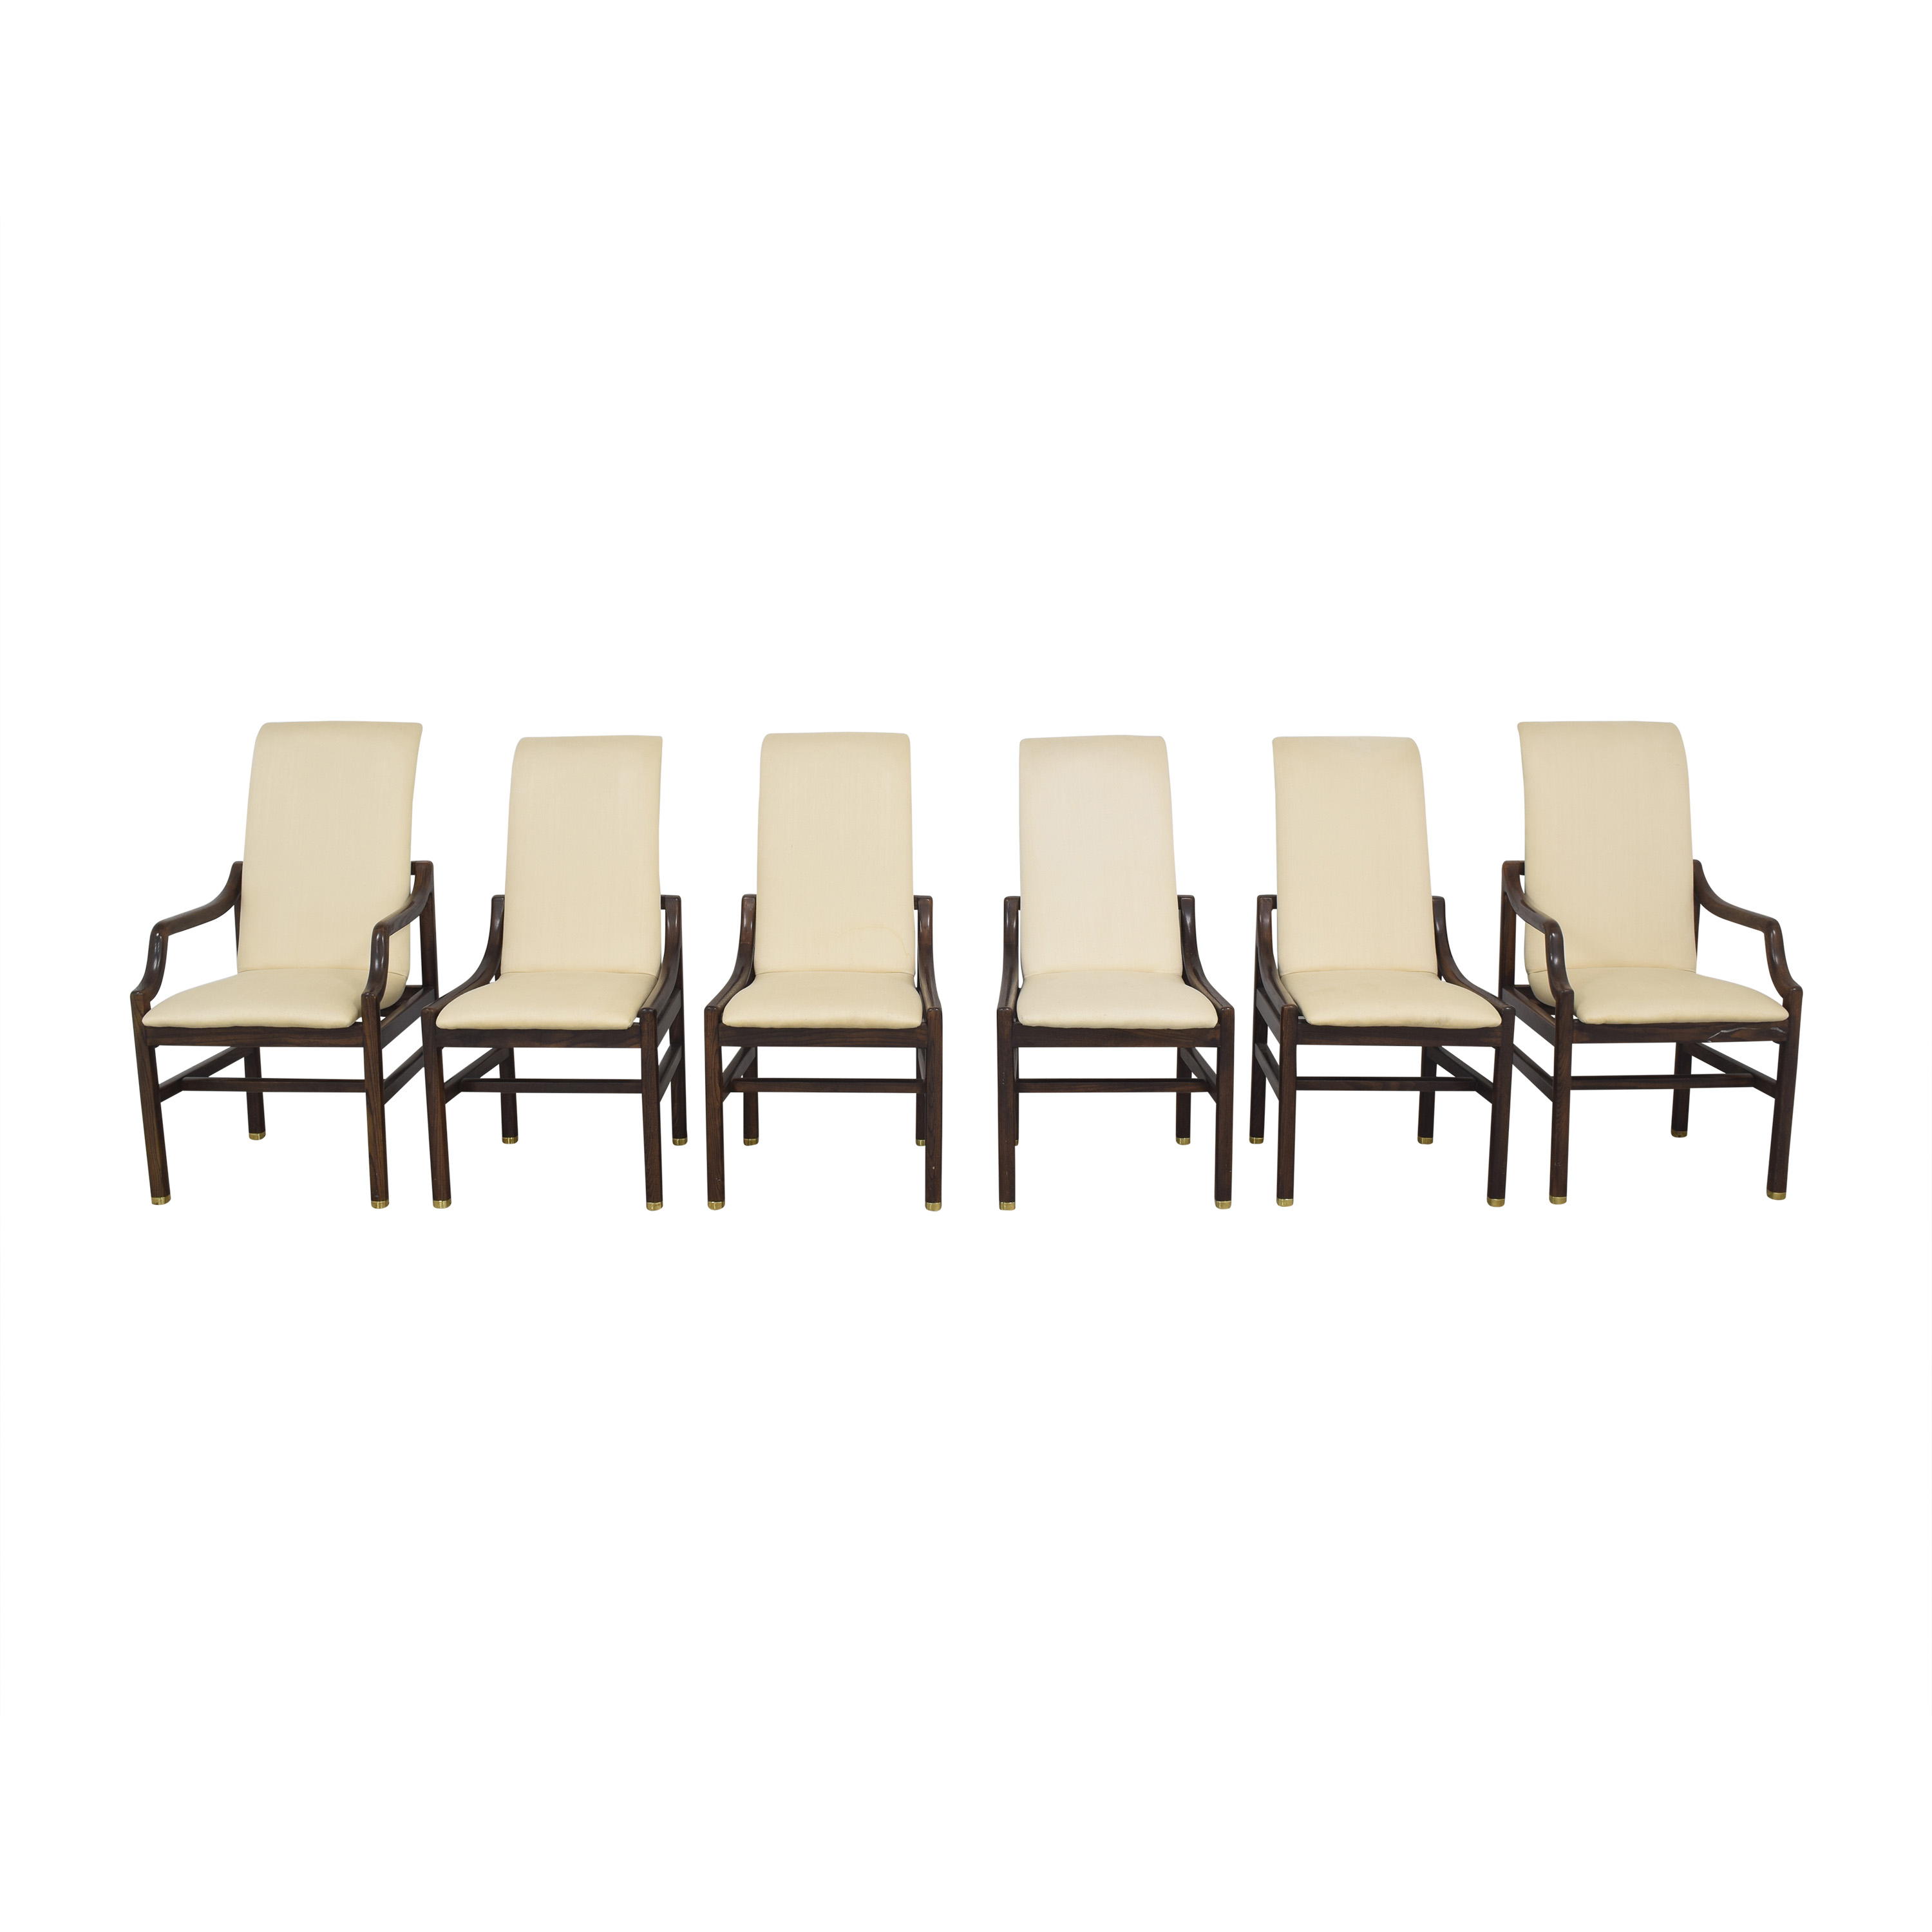 Henredon Furniture Henredon Furniture Vintage Dining Chairs ma